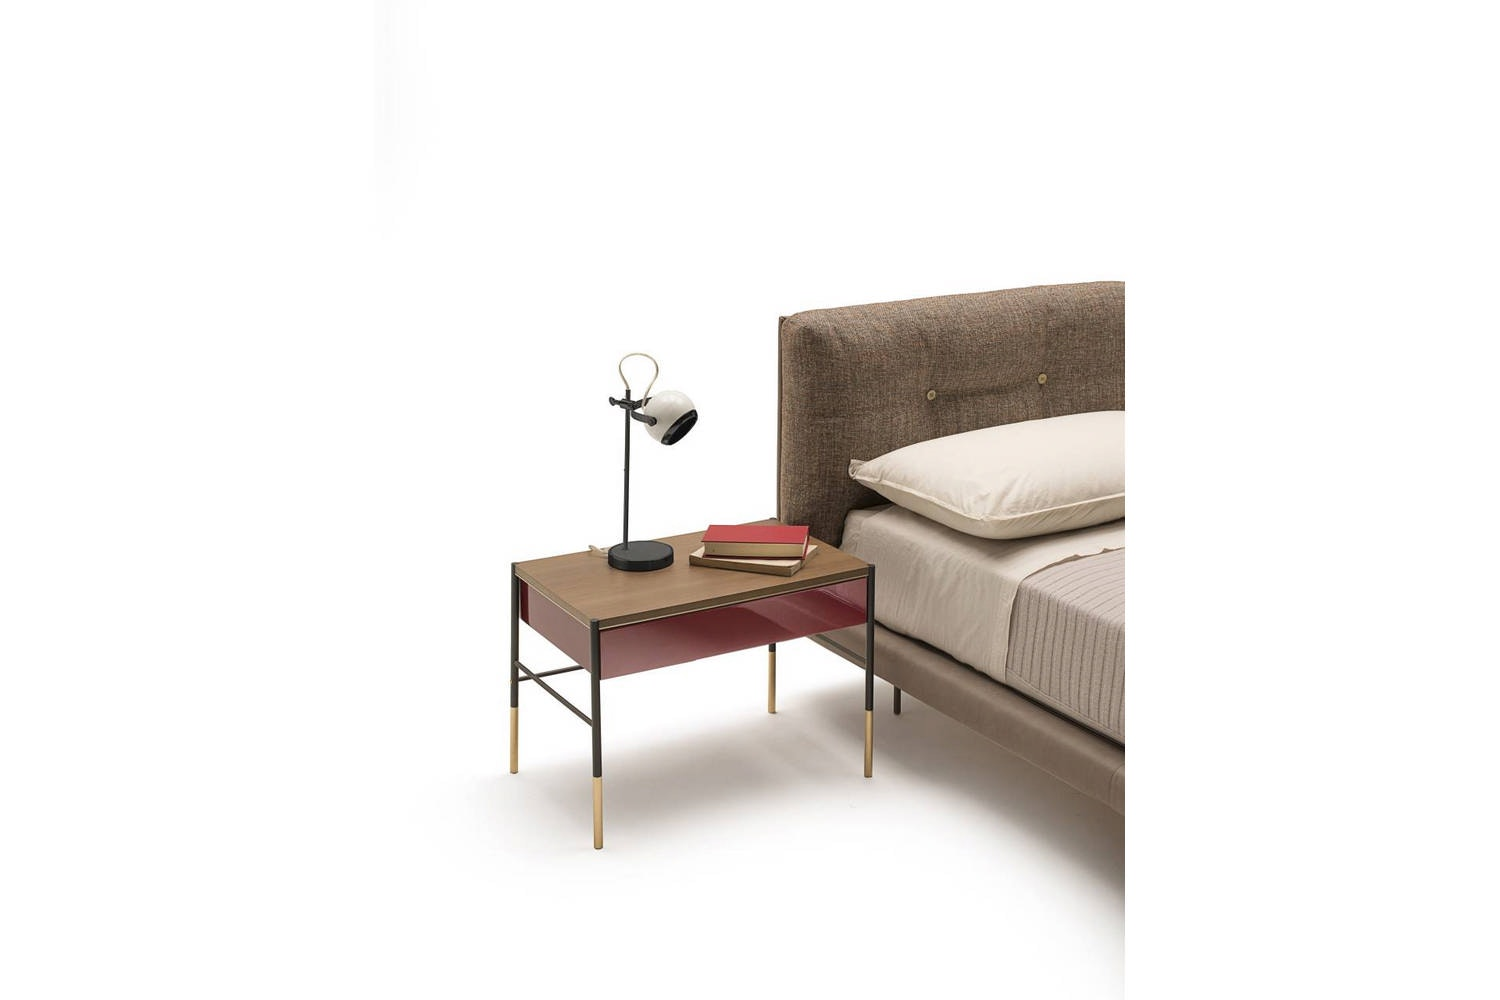 Era Comodino Bedside Table by David Lopez Quincoces for Living Divani